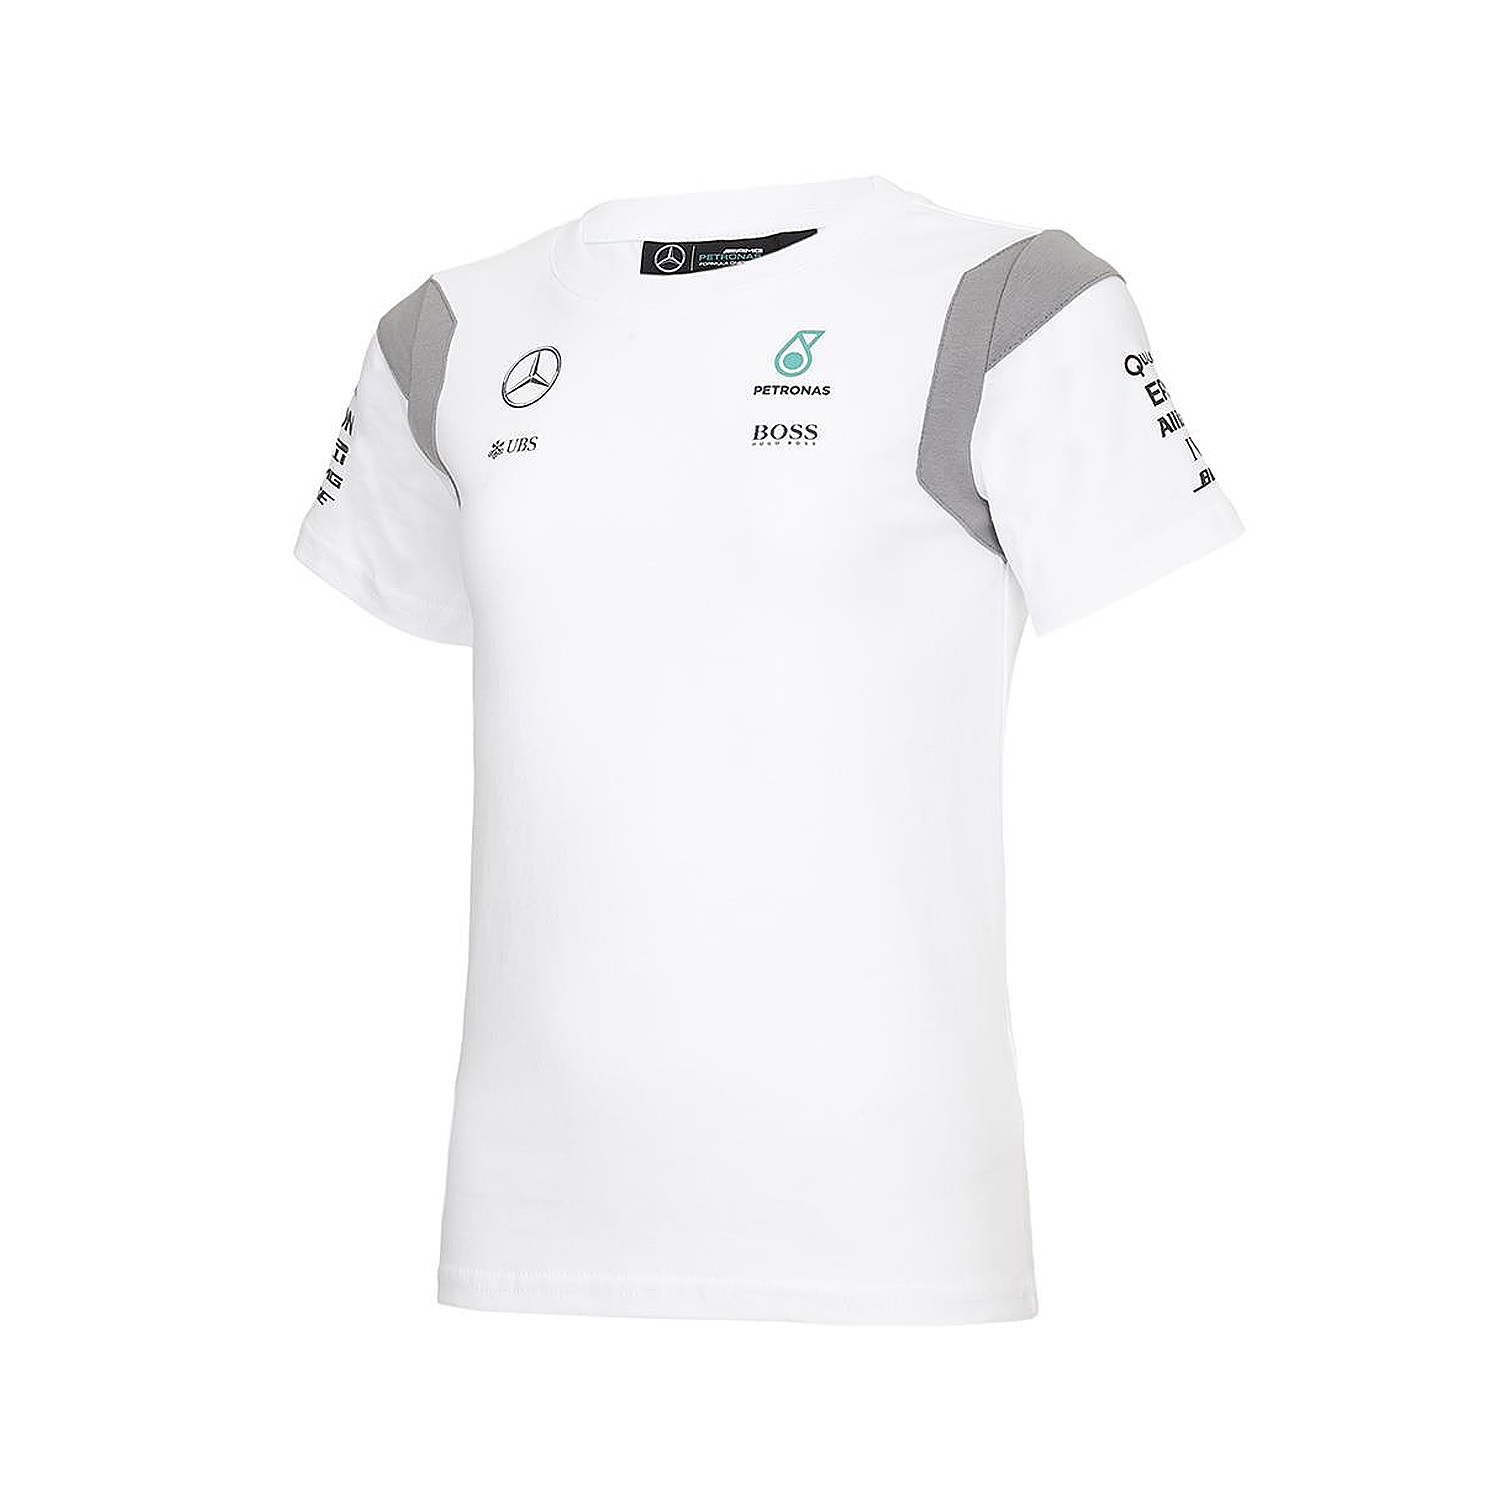 Bambini 2 - 16 anni T-Shirt Kids Formula One 1 Mercedes AMG Petronas F1 Team Bambino Bianco Nuovo! T-shirt, maglie e camicie